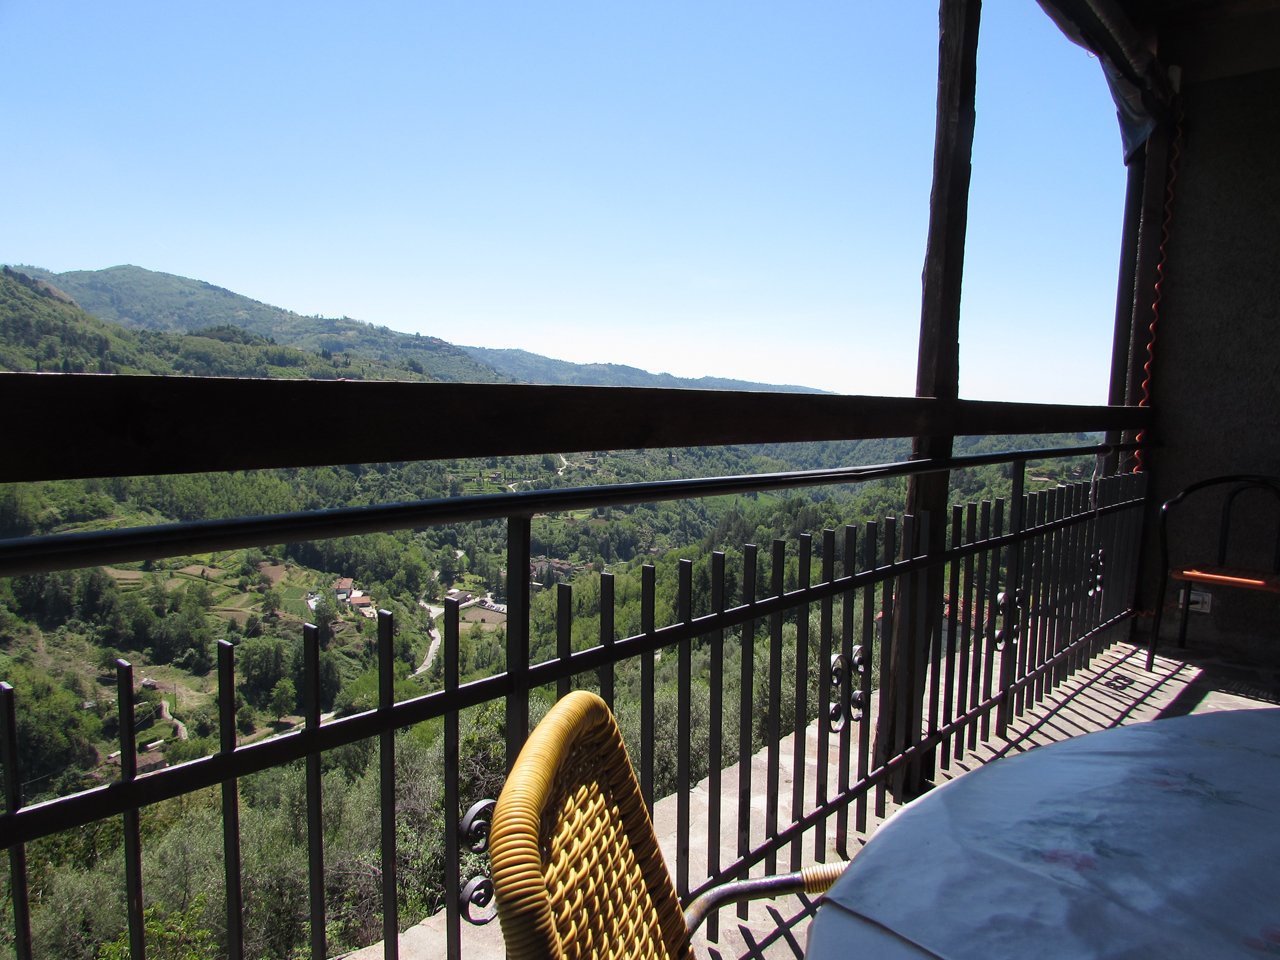 Castelvecchio view from terrace  Photo by Aaron Crossley